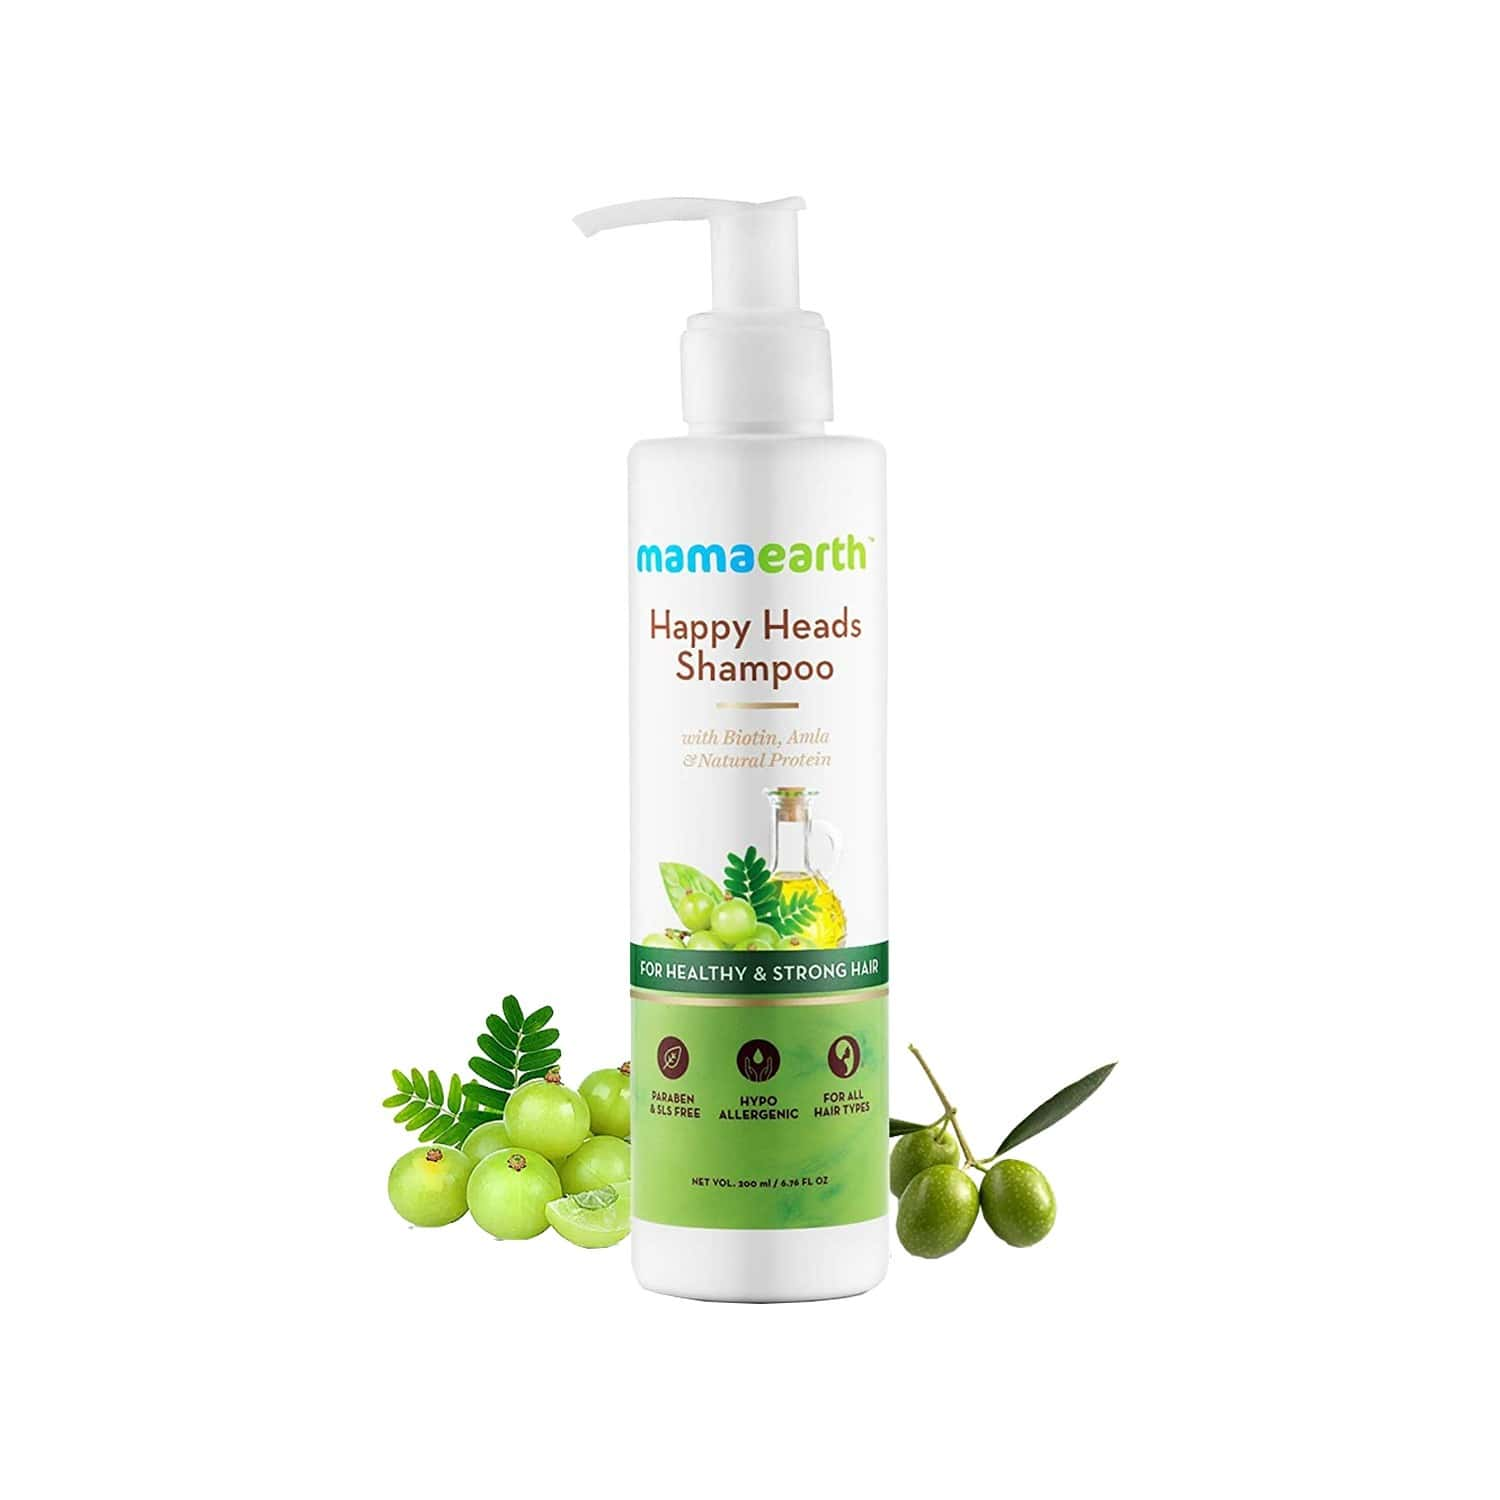 Mamaearth Natural Shampoo - 200ml & Conditioners - 200ml With Biotin, Protien, Bhringraj, Amla For Hair Fall And Shiny Hair, Sulphate And Sles Free